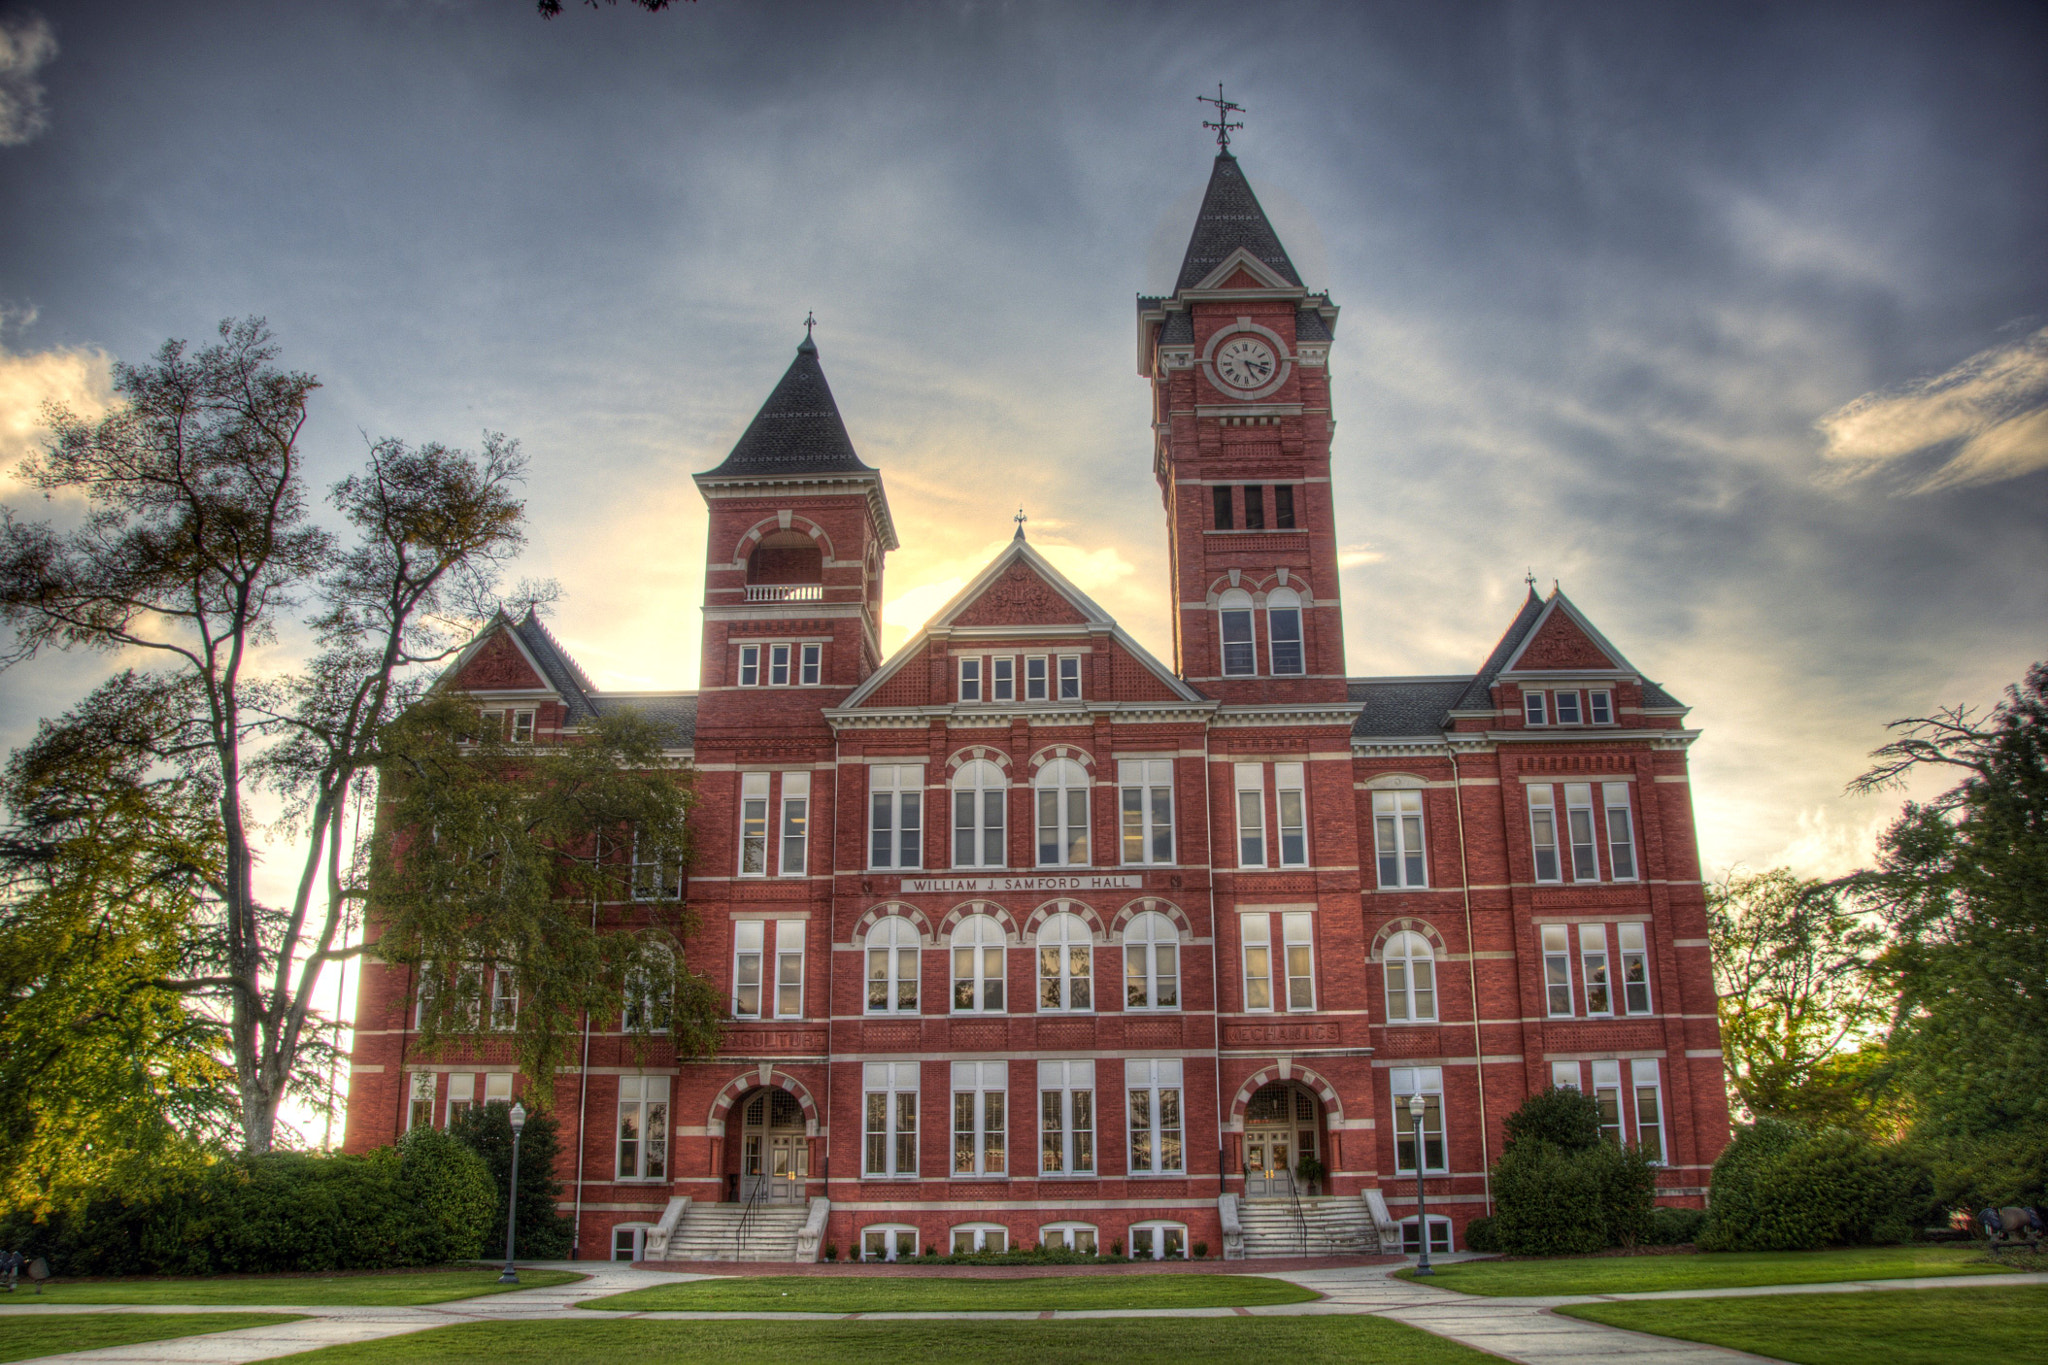 Photograph Samford Hall by Grant Williams on 500px